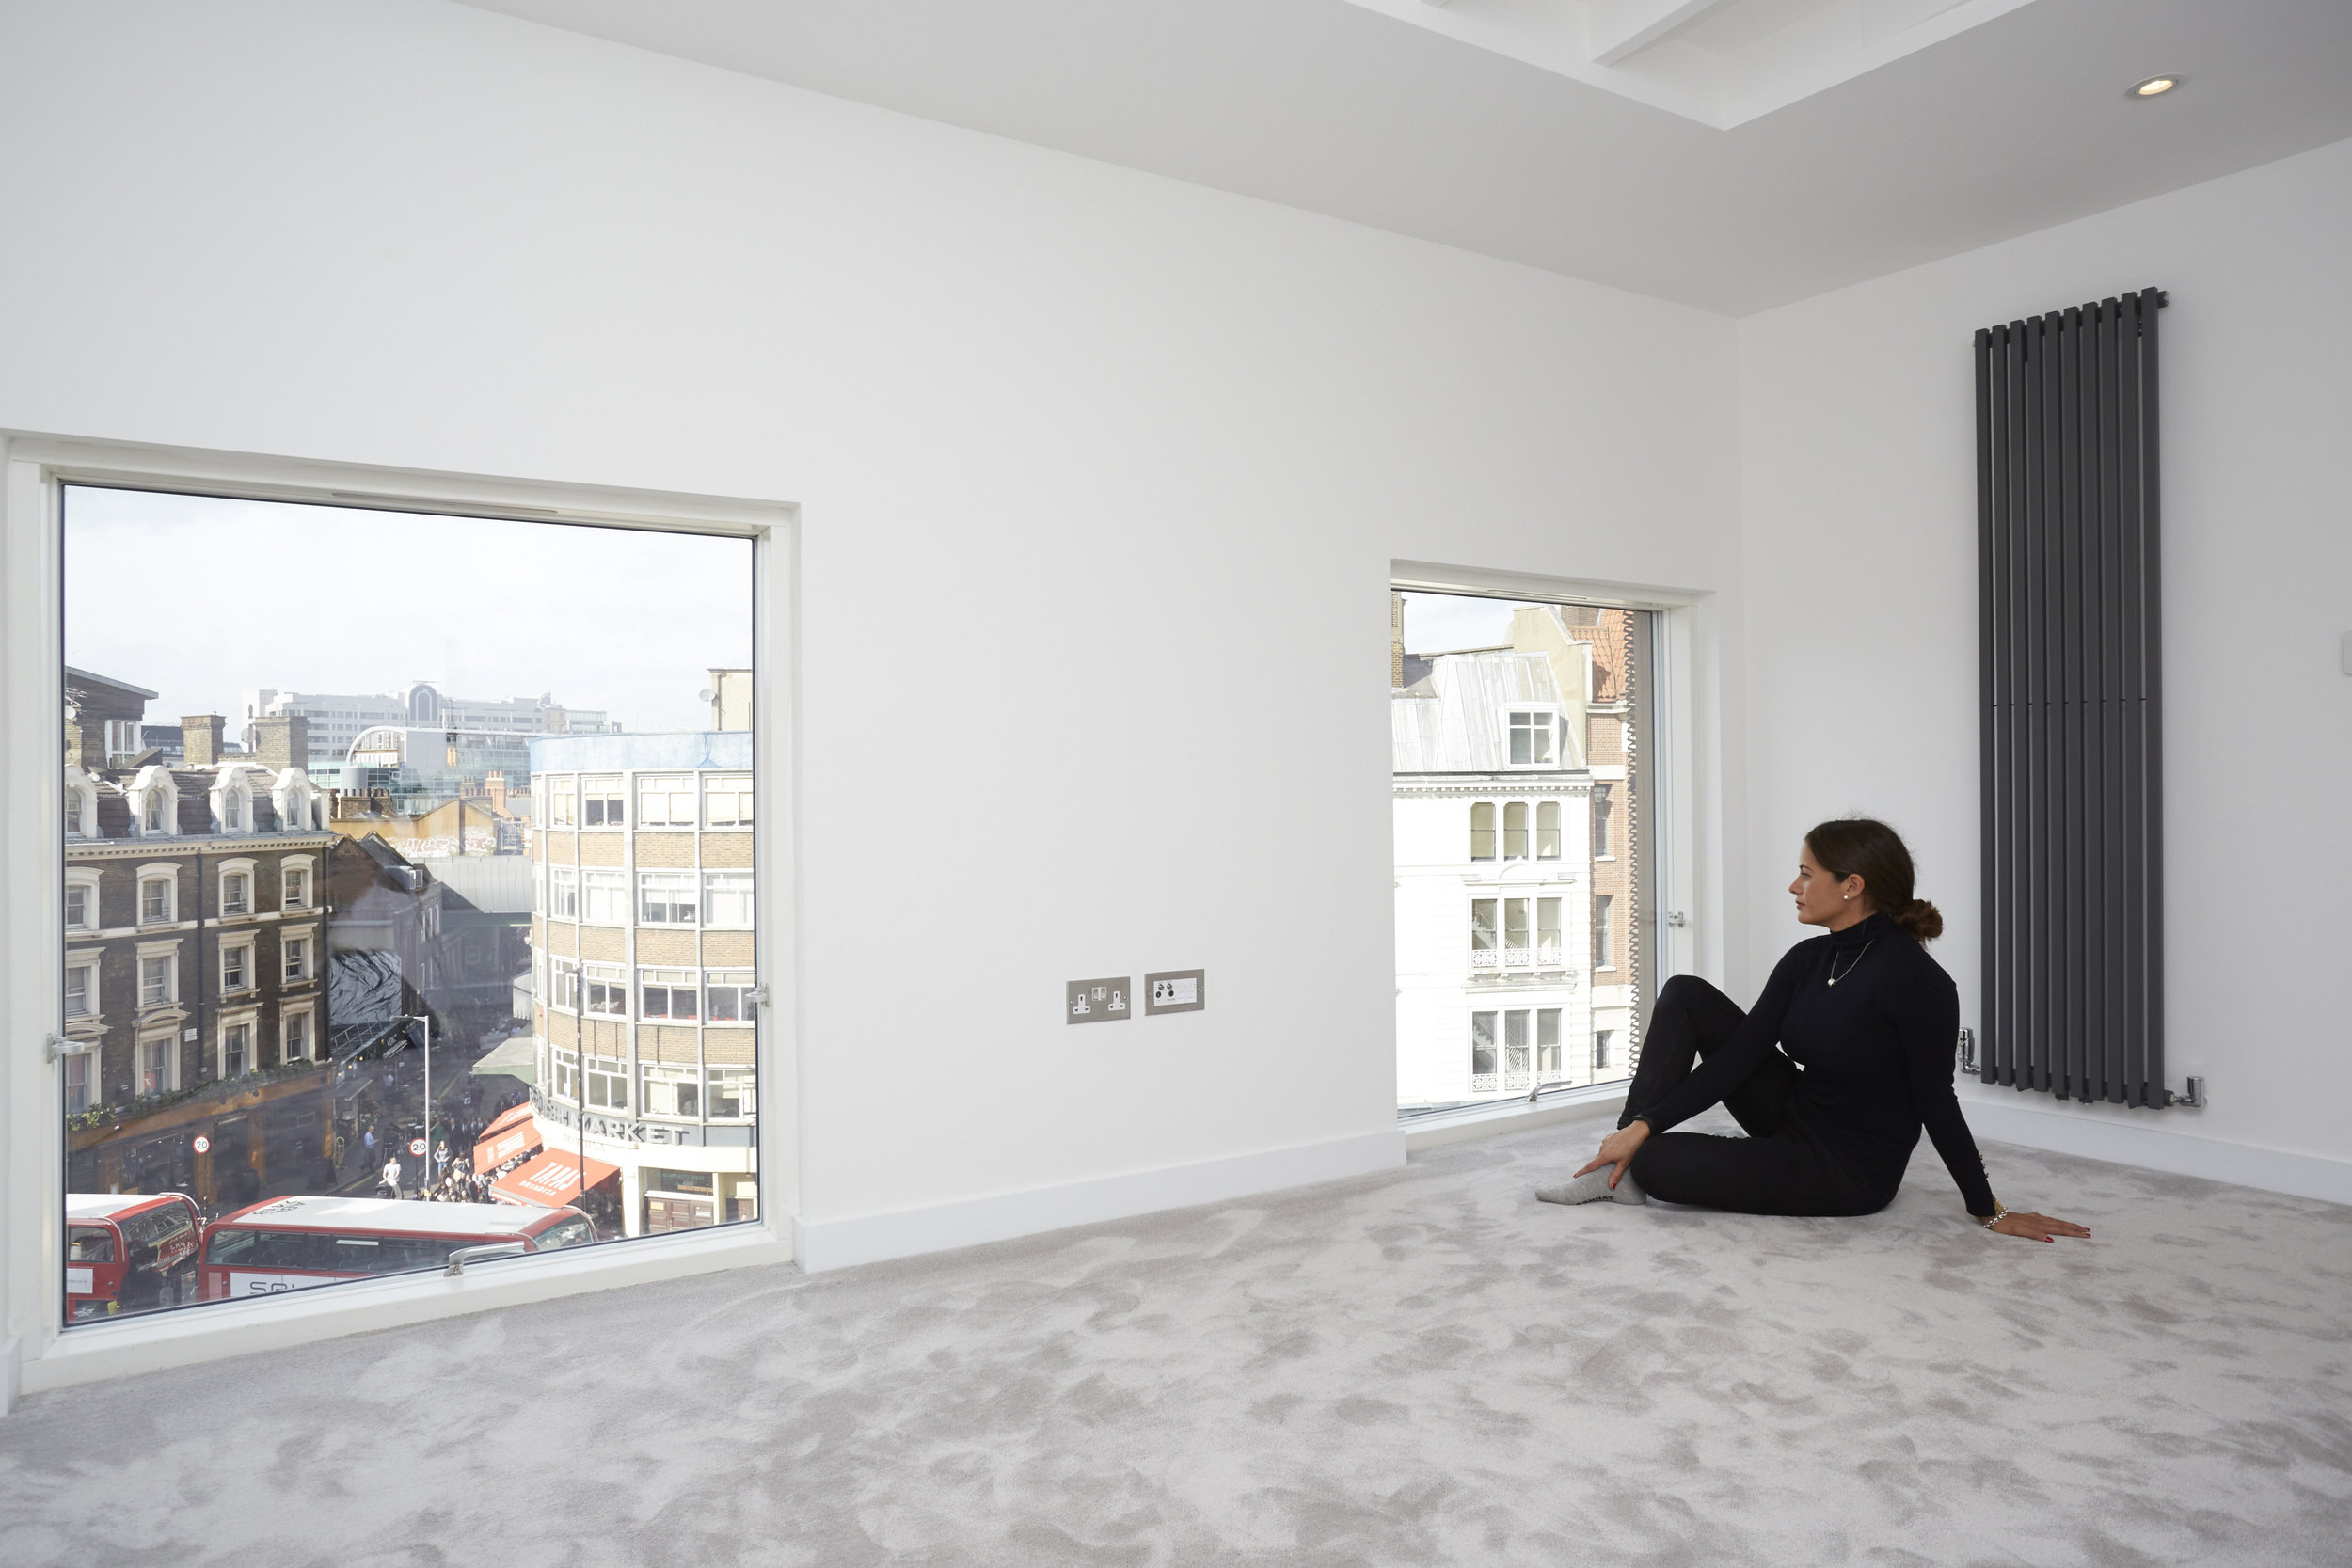 fletcher crane architects, bedroom, borough high street, modern architecture, cork, apartments